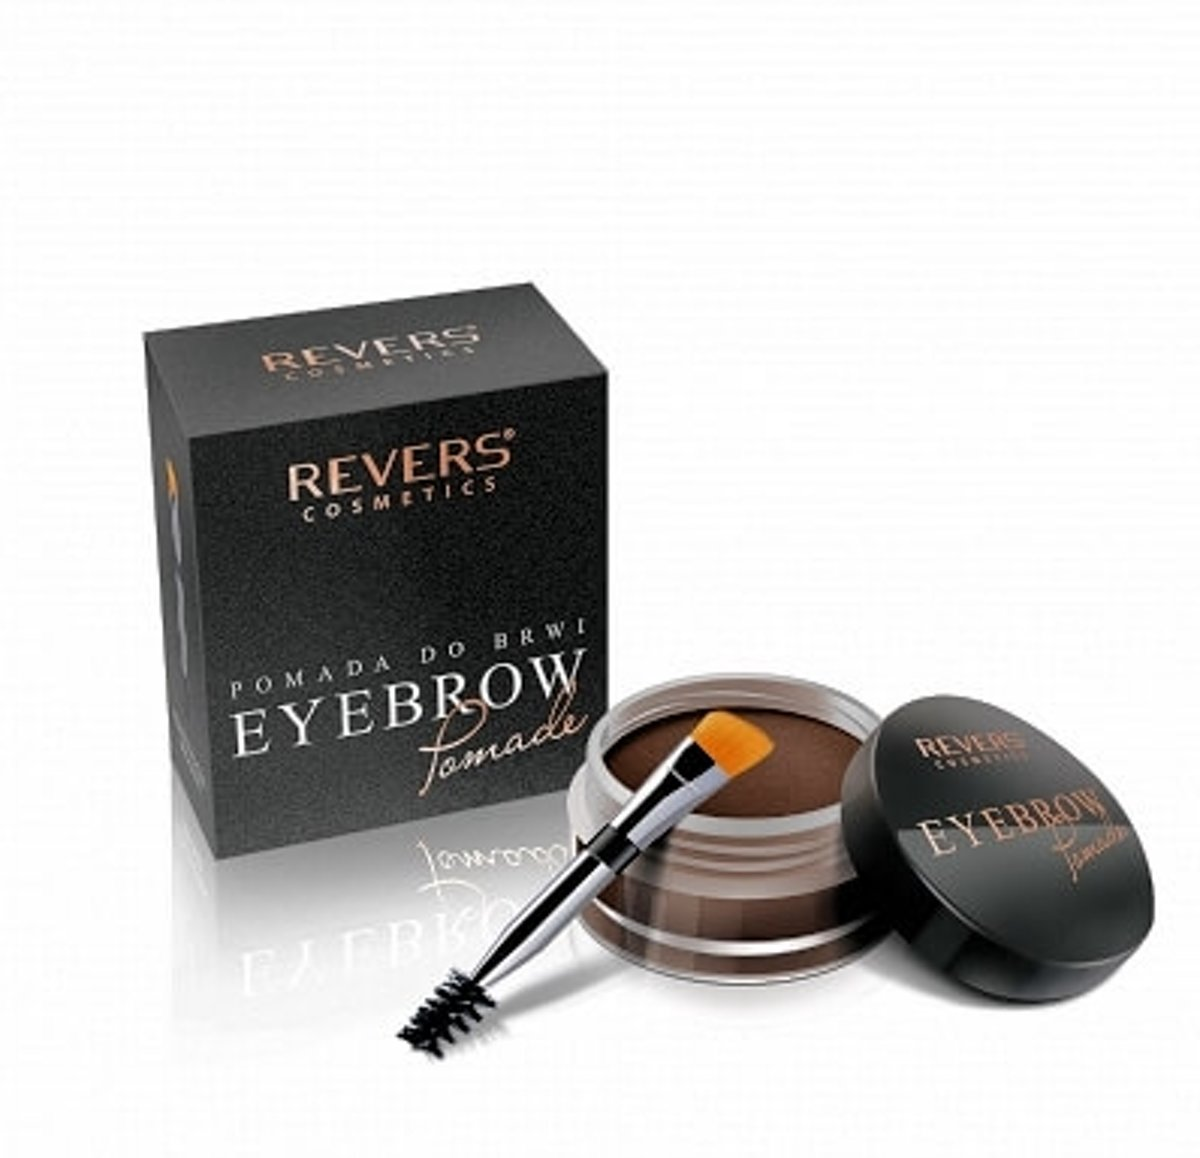 REVERS® Eyebrow Pomade Met Argan Olie #01 - Blonde